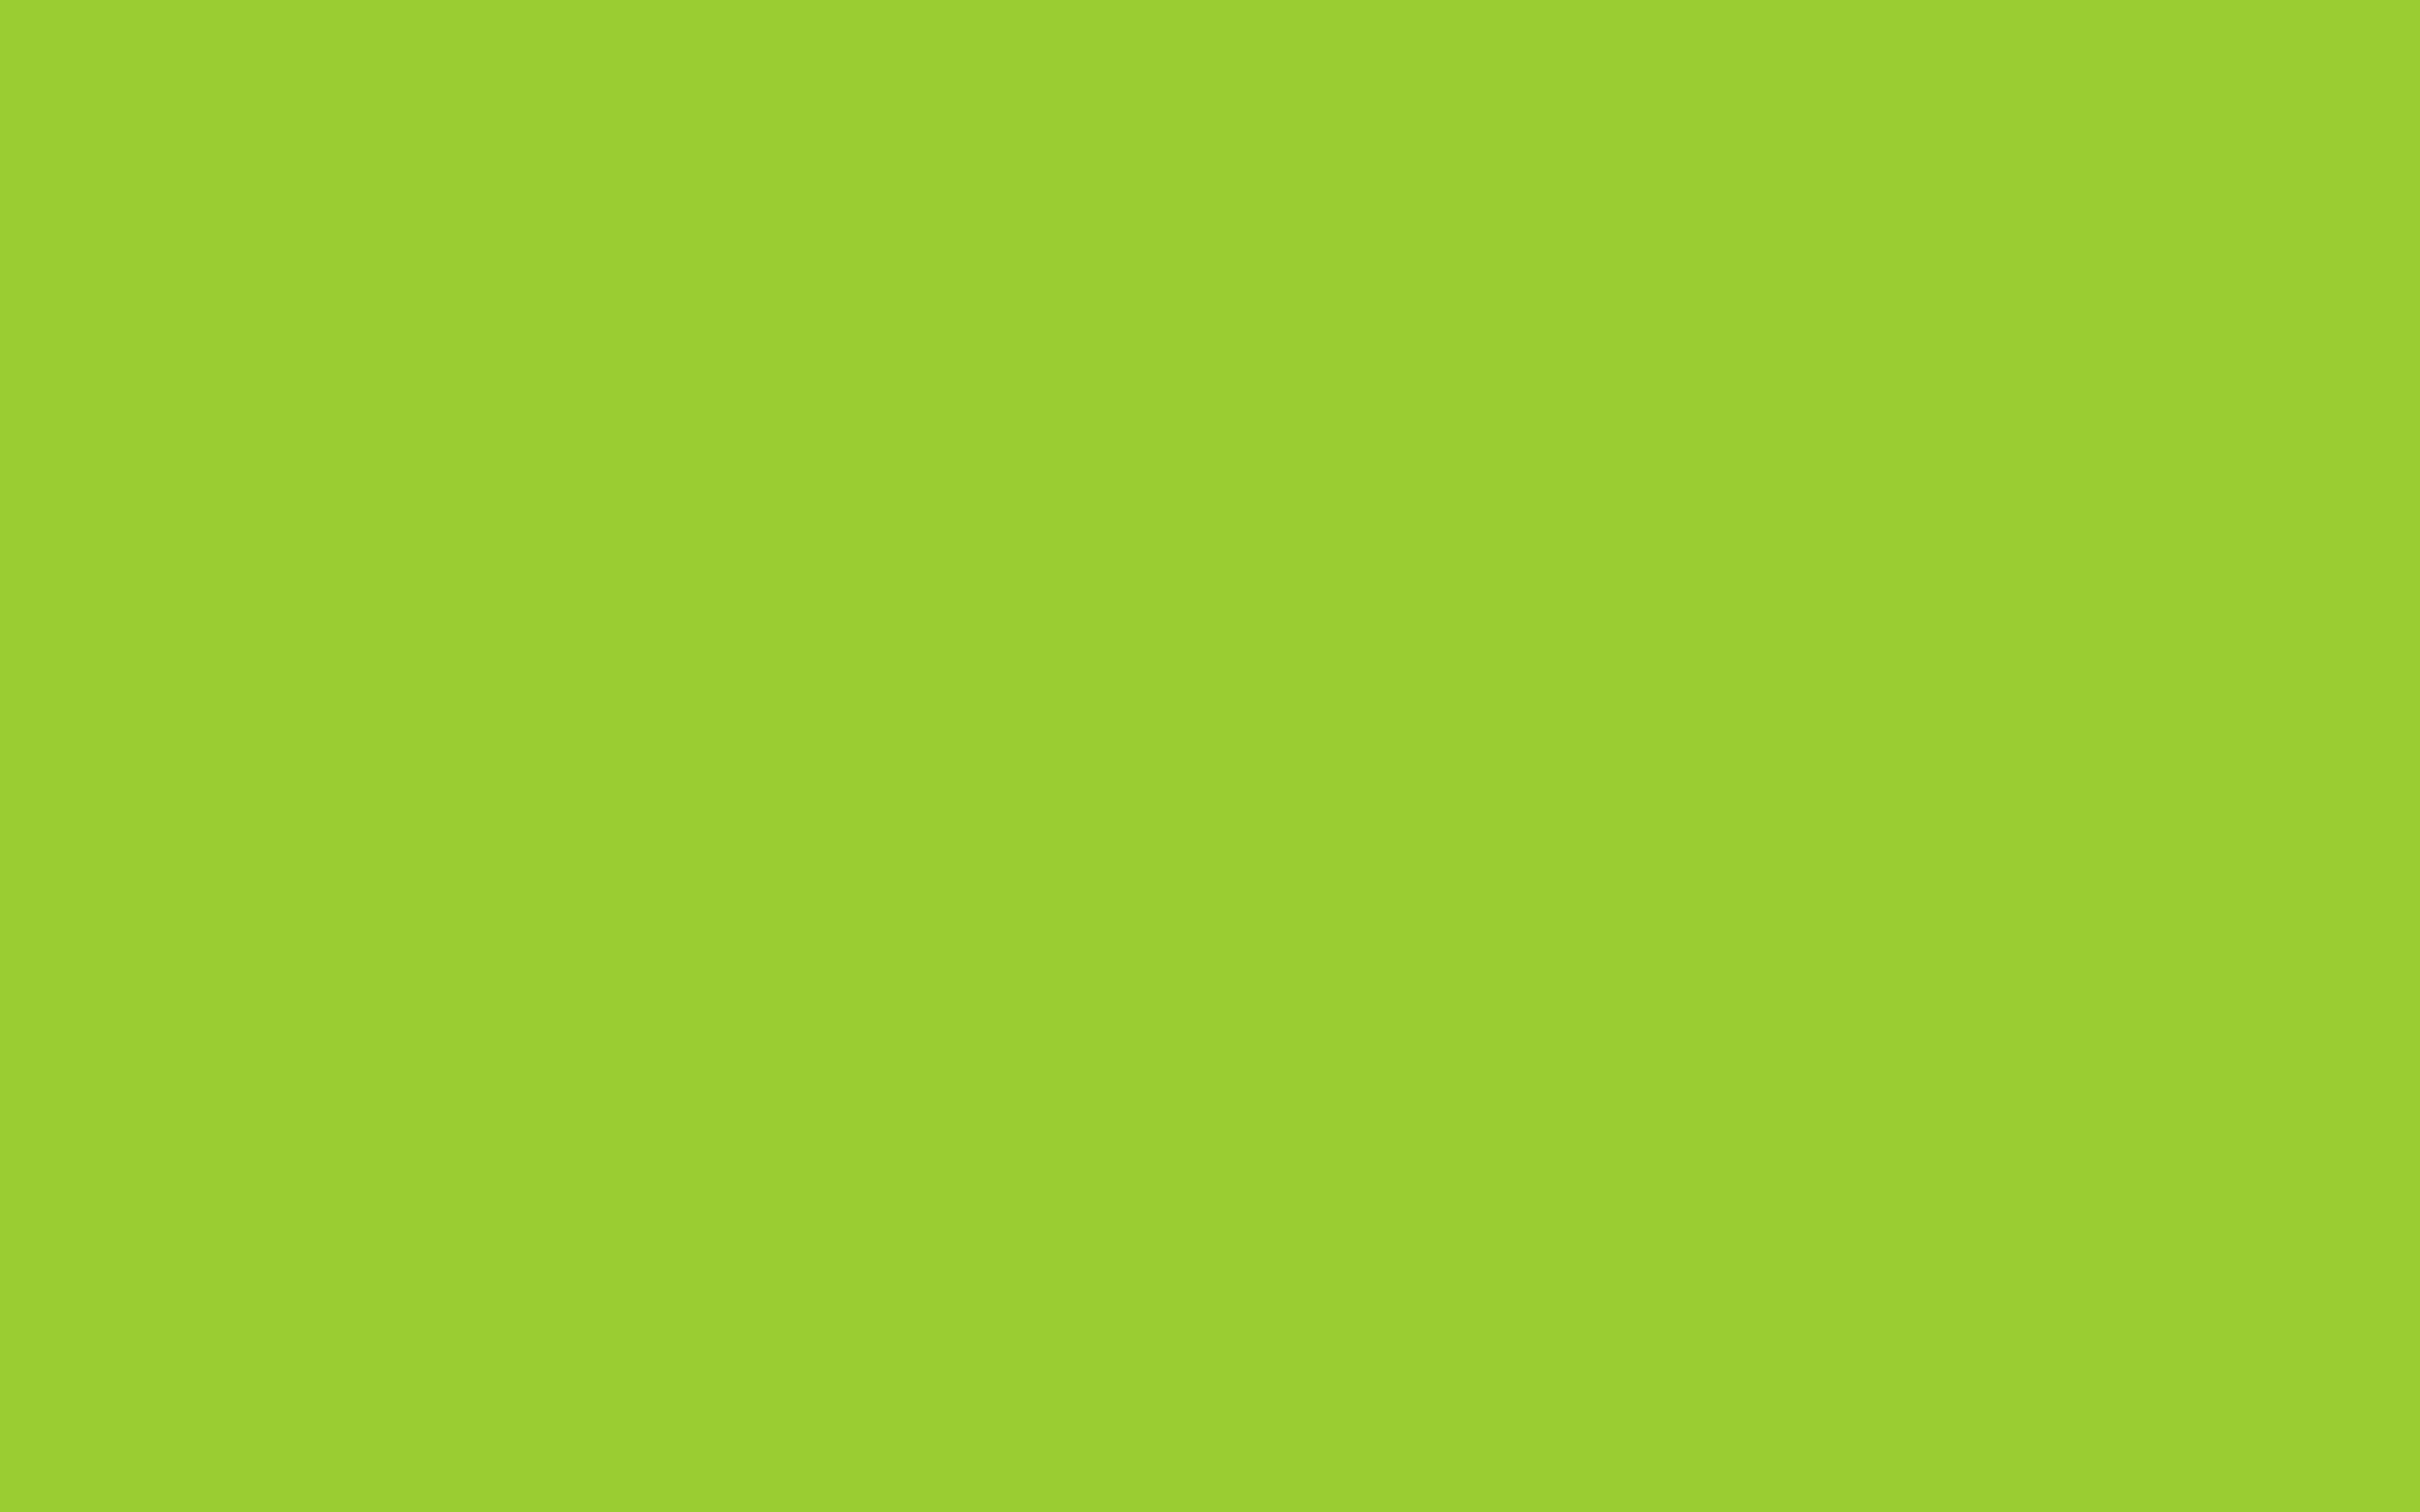 2560x1600 Yellow-green Solid Color Background